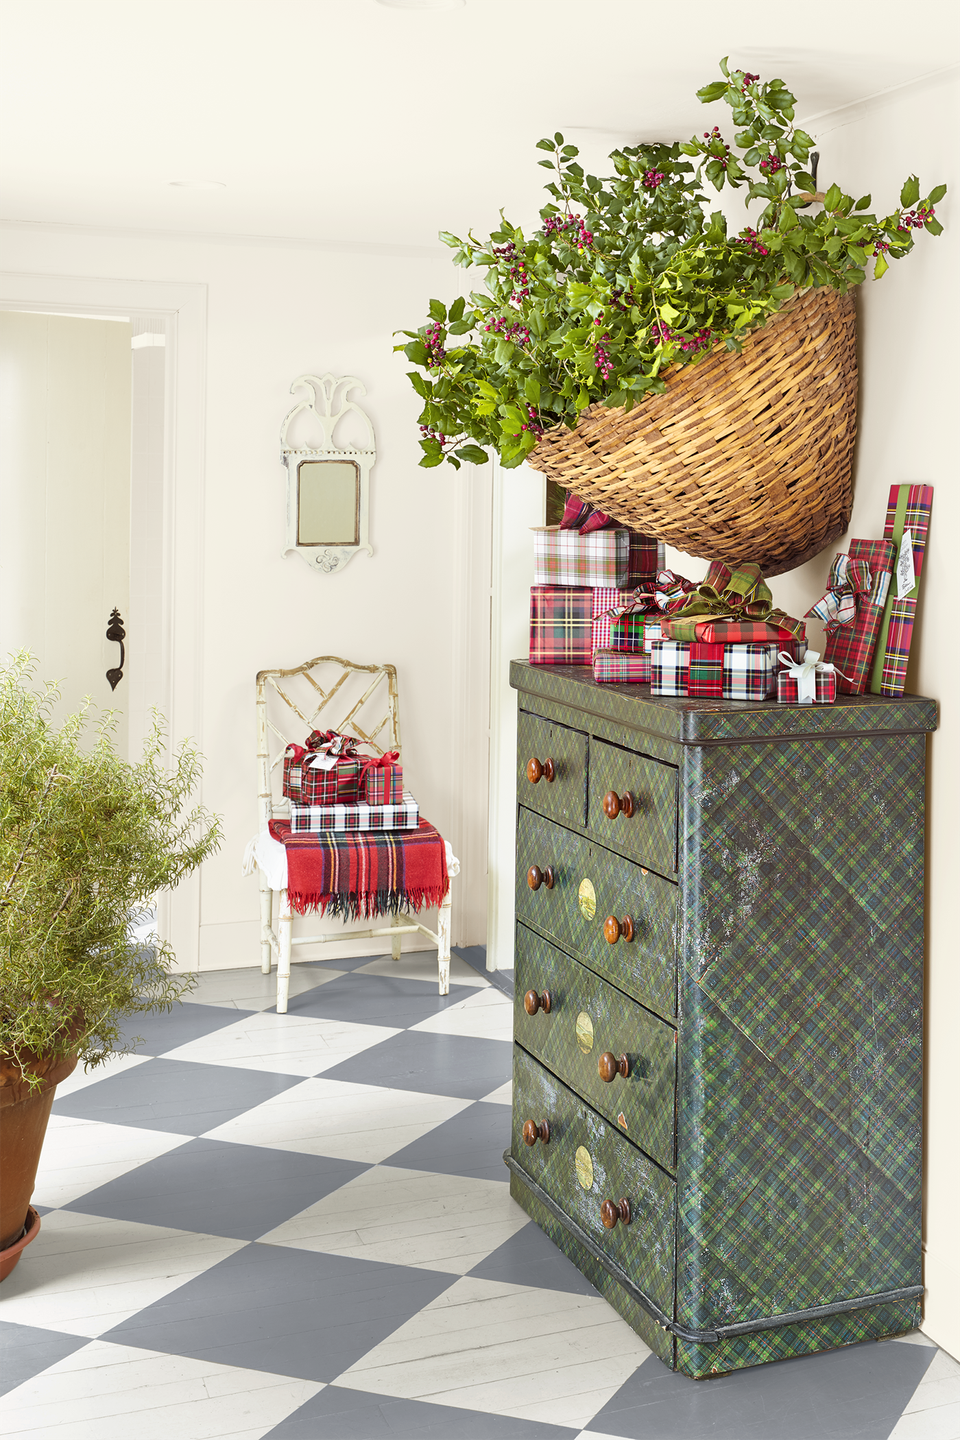 """<p>Choose pretty plaids for your wrapping paper and <a href=""""https://www.countryliving.com/shopping/gifts/g2127/cheap-christmas-gifts/"""" rel=""""nofollow noopener"""" target=""""_blank"""" data-ylk=""""slk:your gifts"""" class=""""link rapid-noclick-resp"""">your gifts</a> will become a display-worthy work of art. Round 'em all up to feature in your entryway on tables and even chairs.</p><p><a class=""""link rapid-noclick-resp"""" href=""""https://www.amazon.com/Hallmark-Reversible-Christmas-Wrapping-Bundle/dp/B01M2UWQSW/?tag=syn-yahoo-20&ascsubtag=%5Bartid%7C10050.g.1247%5Bsrc%7Cyahoo-us"""" rel=""""nofollow noopener"""" target=""""_blank"""" data-ylk=""""slk:SHOP PLAID WRAPPING PAPER"""">SHOP PLAID WRAPPING PAPER</a></p>"""